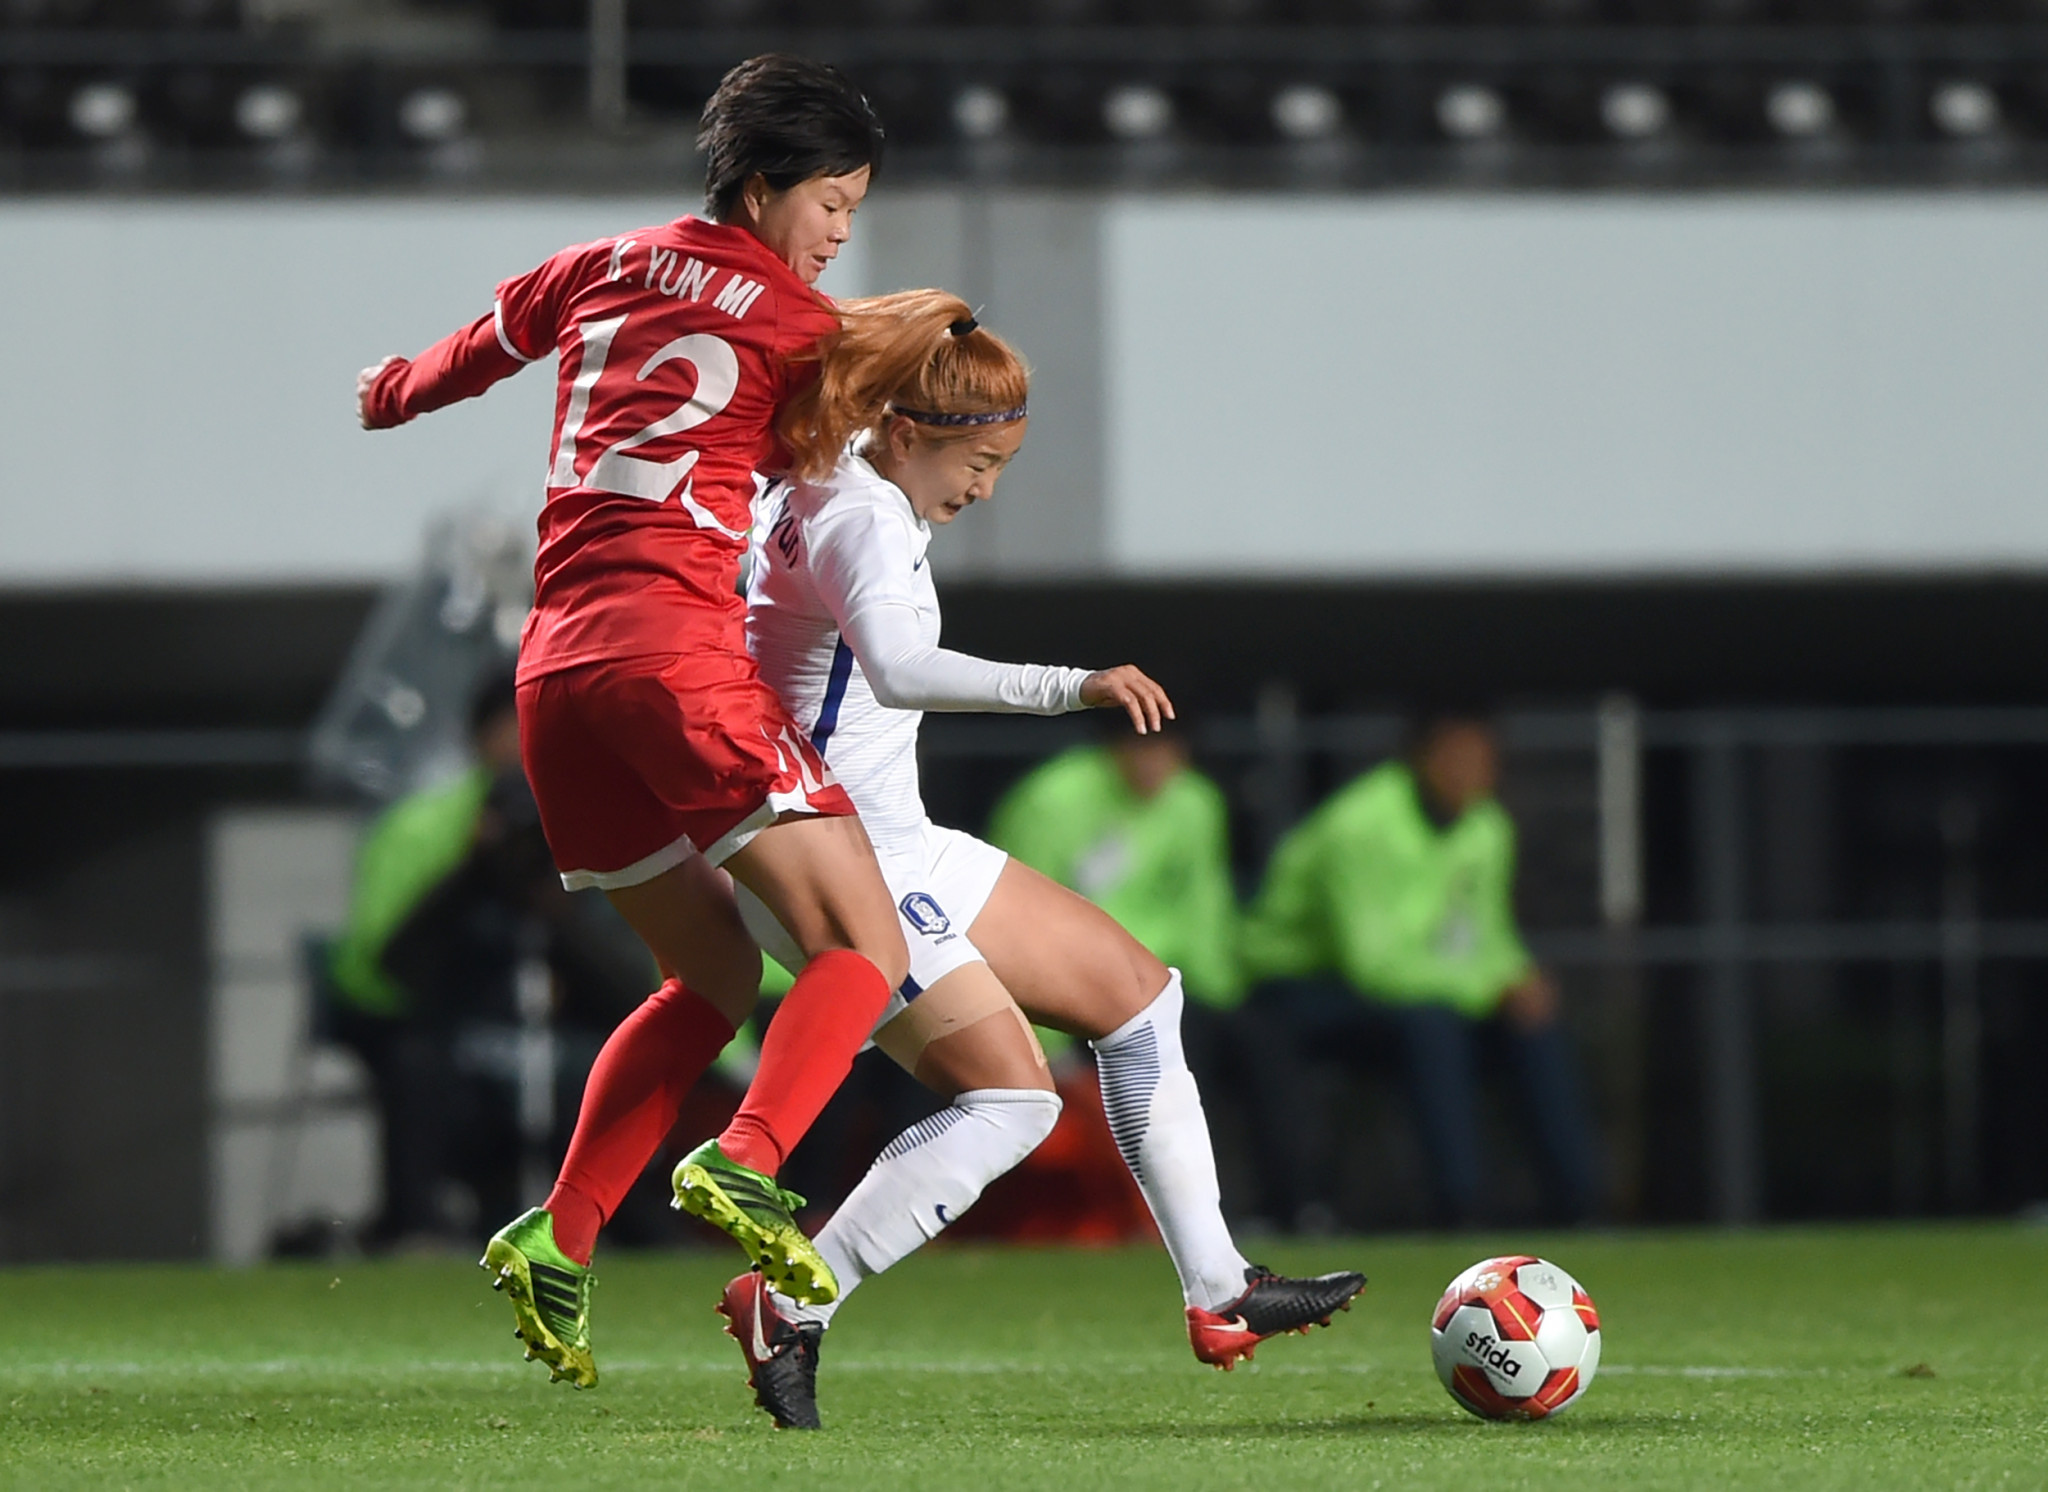 South Korea have only beaten North Korea once in women's football ©Getty Images